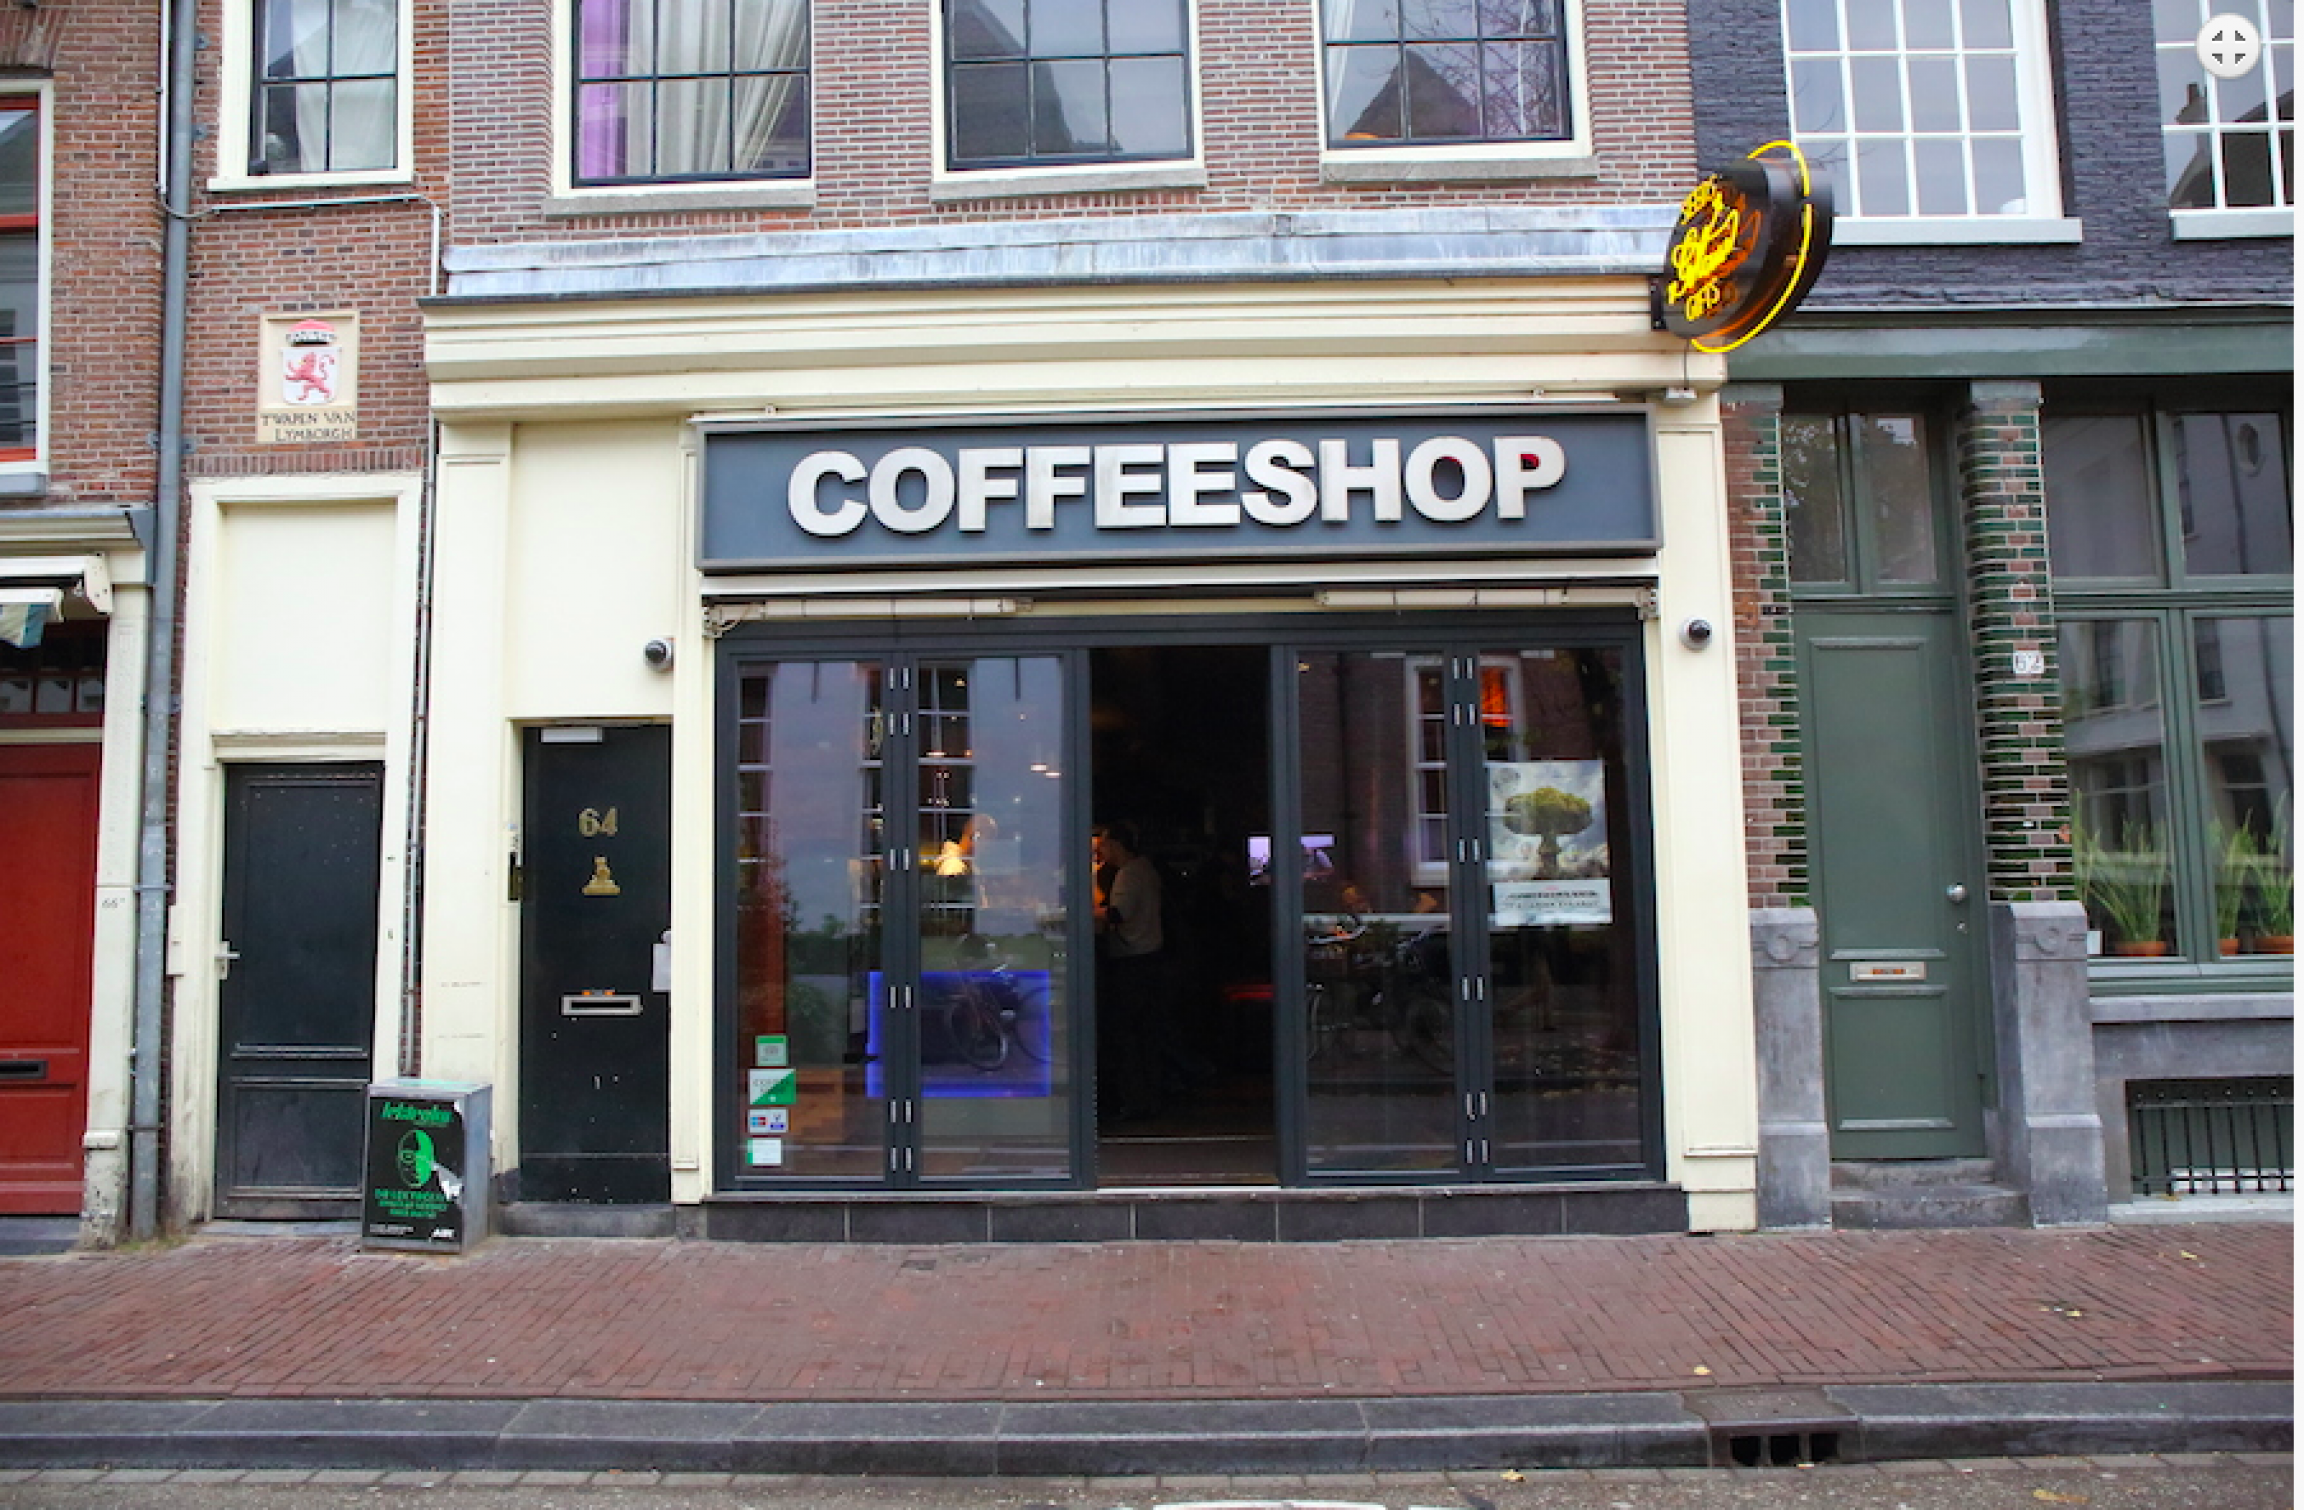 The outside facade of a Green House coffee shop in Amsterdam, Netherlands.